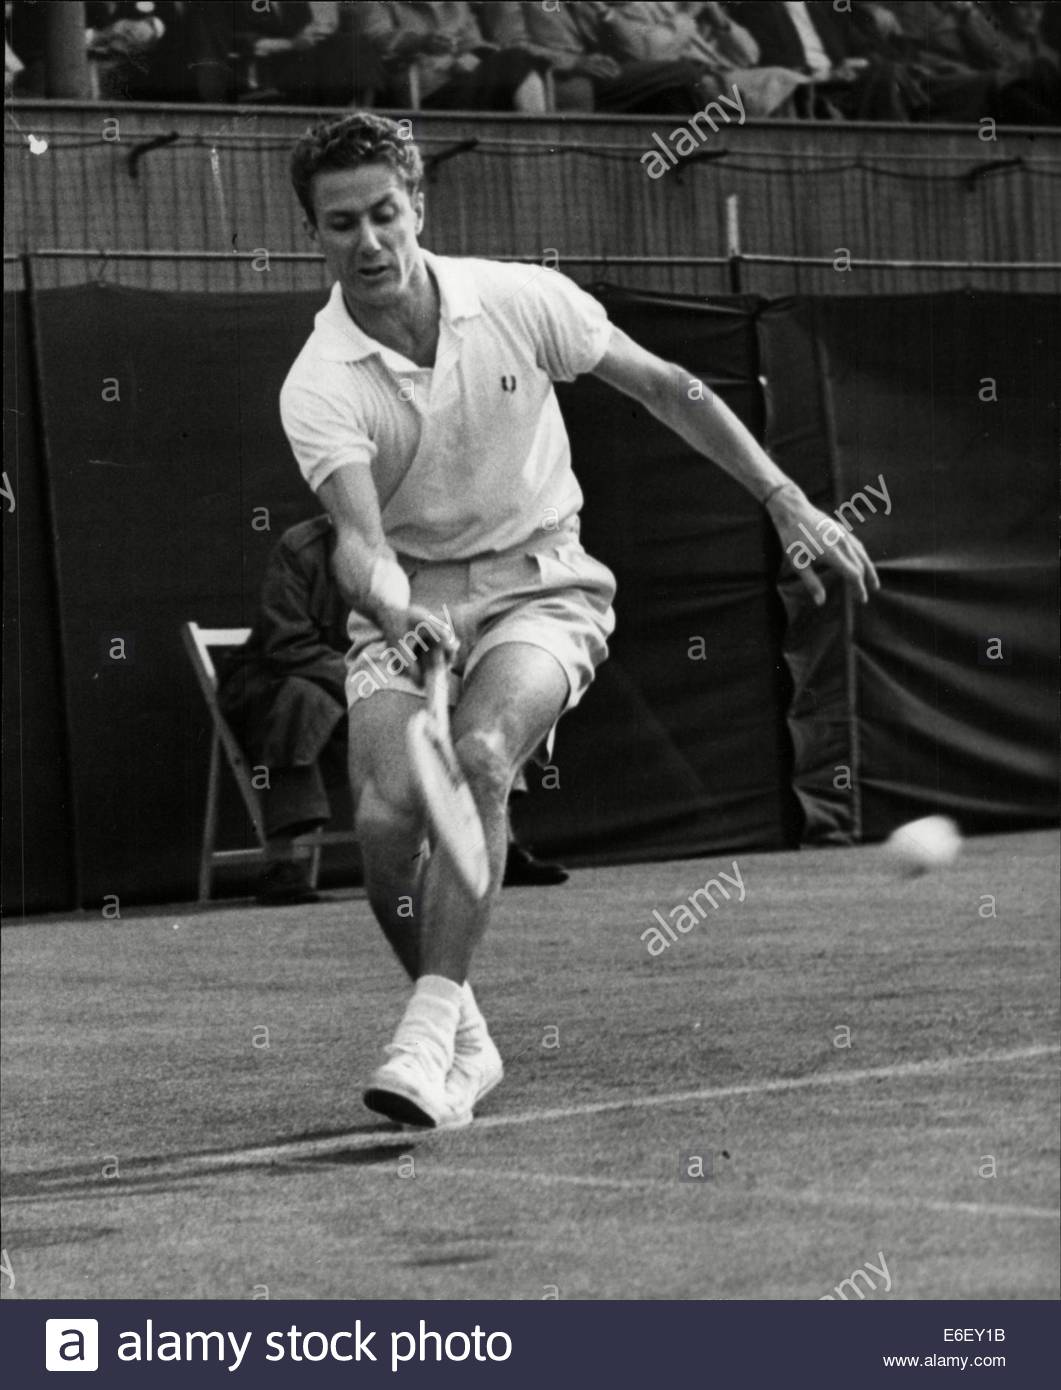 Philippe Washer In Play At The Davis Cup At Stock Photo